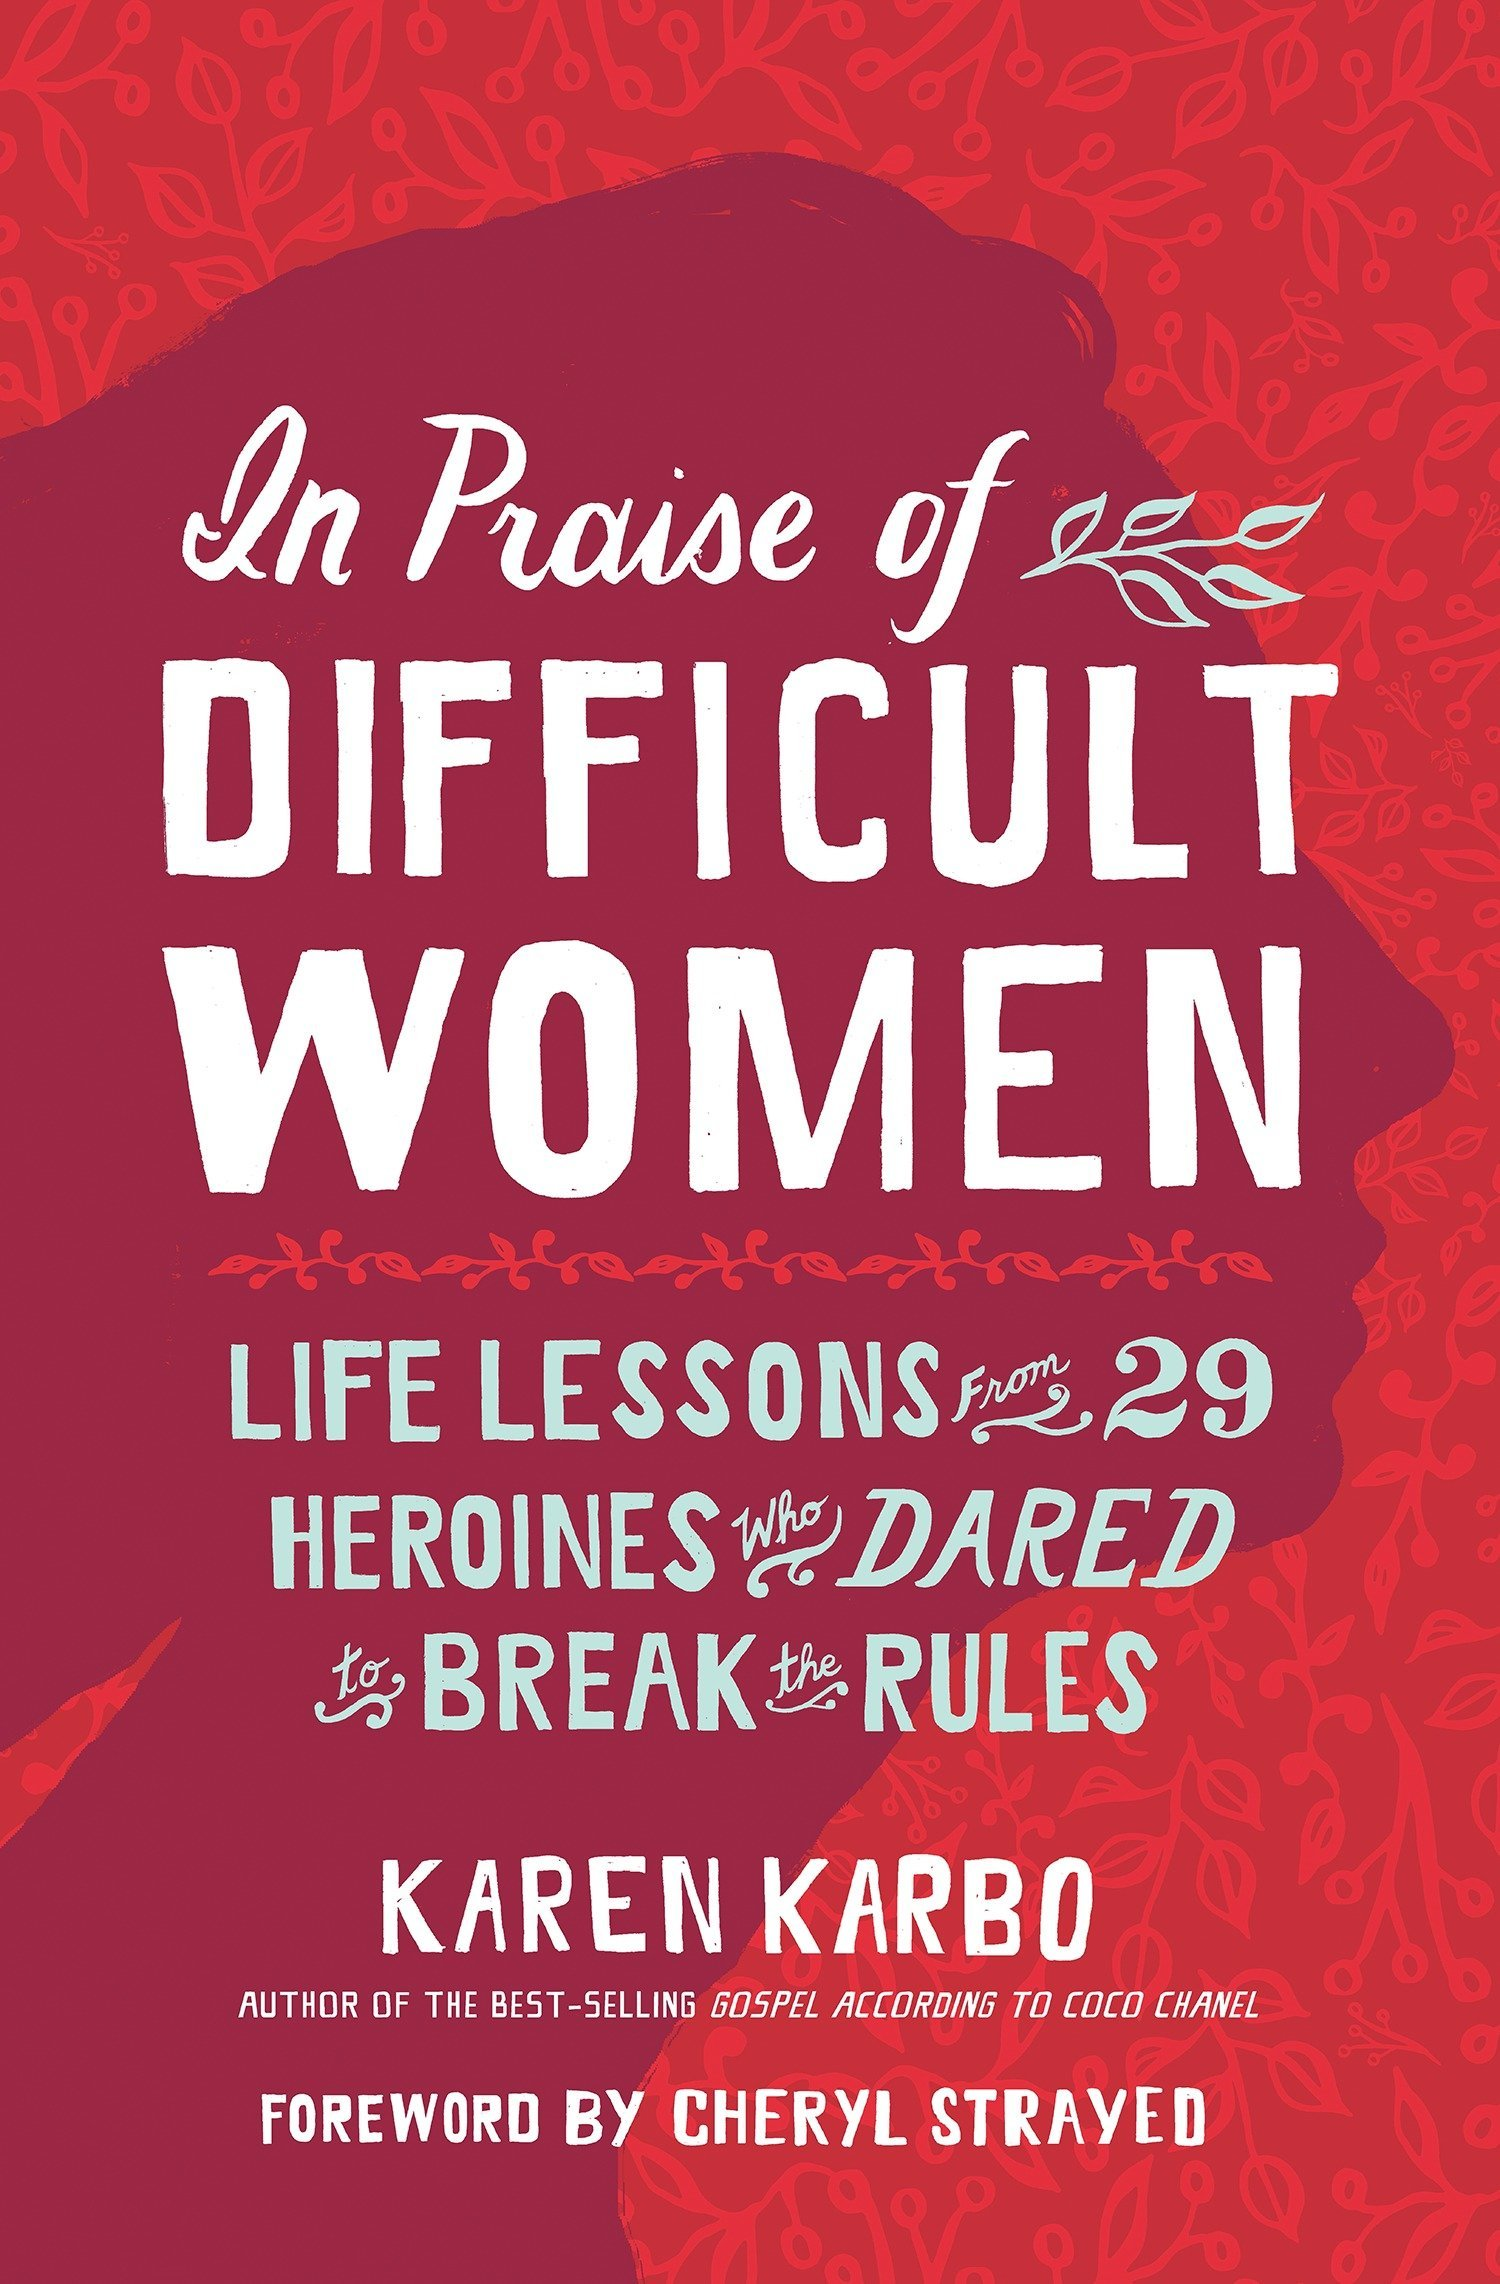 Buy Custom Essay Papers In Praise Of Difficult Women Life Lessons From  Heroines Who Dared To  Break The Rules Karen Karbo Cheryl Strayed  Amazoncom  Books College English Essay Topics also Essay About Healthy Diet In Praise Of Difficult Women Life Lessons From  Heroines Who  Help With A Literature Review